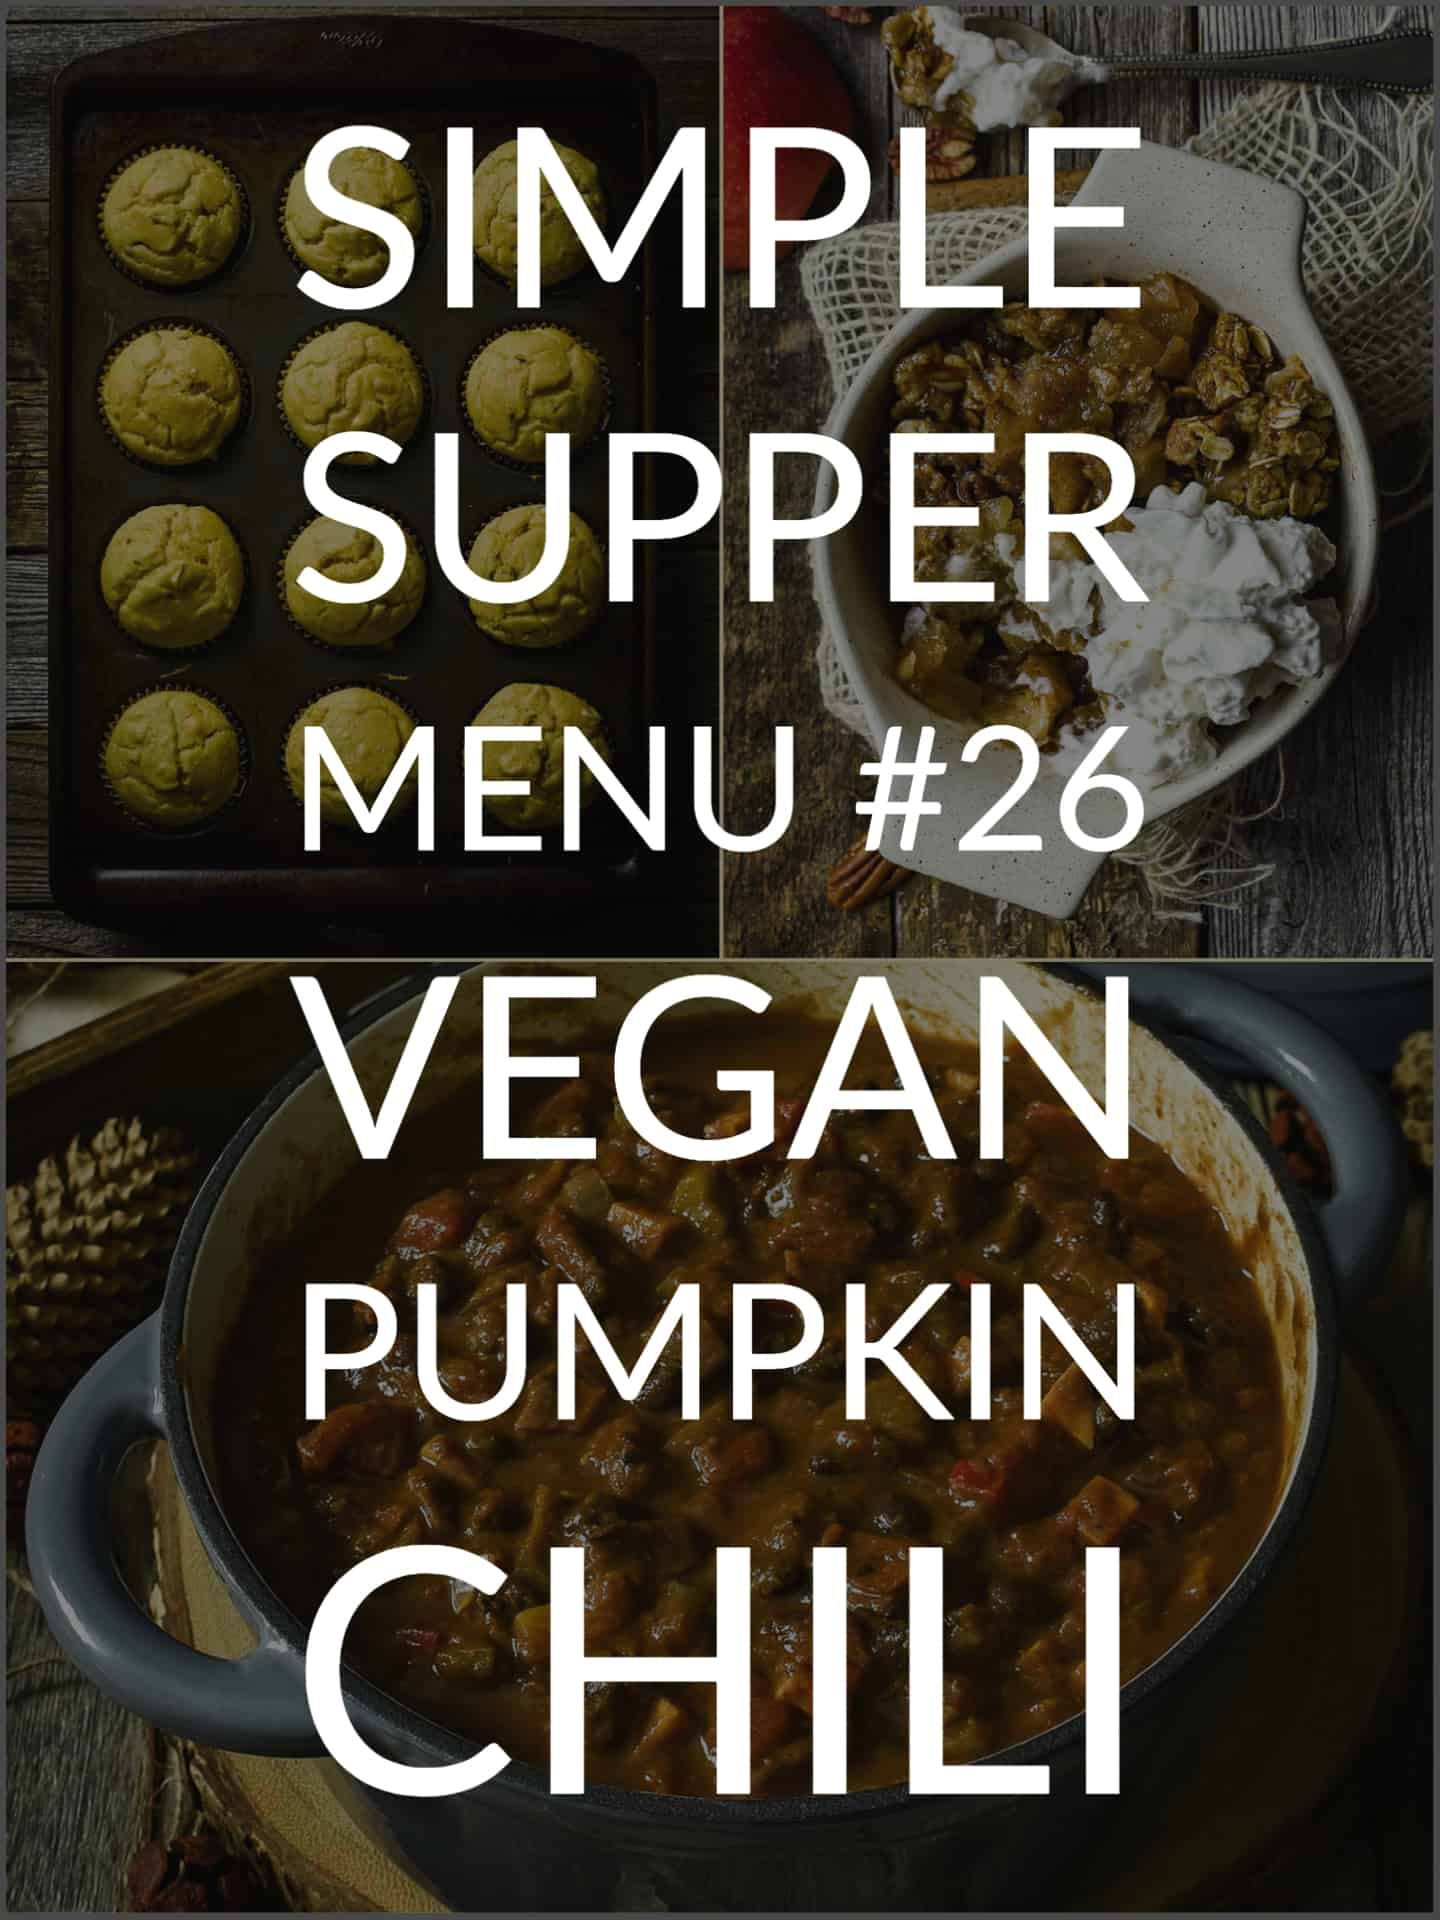 Simple Supper Menu banner with muffin, apple crisp, and pumpkin chili.